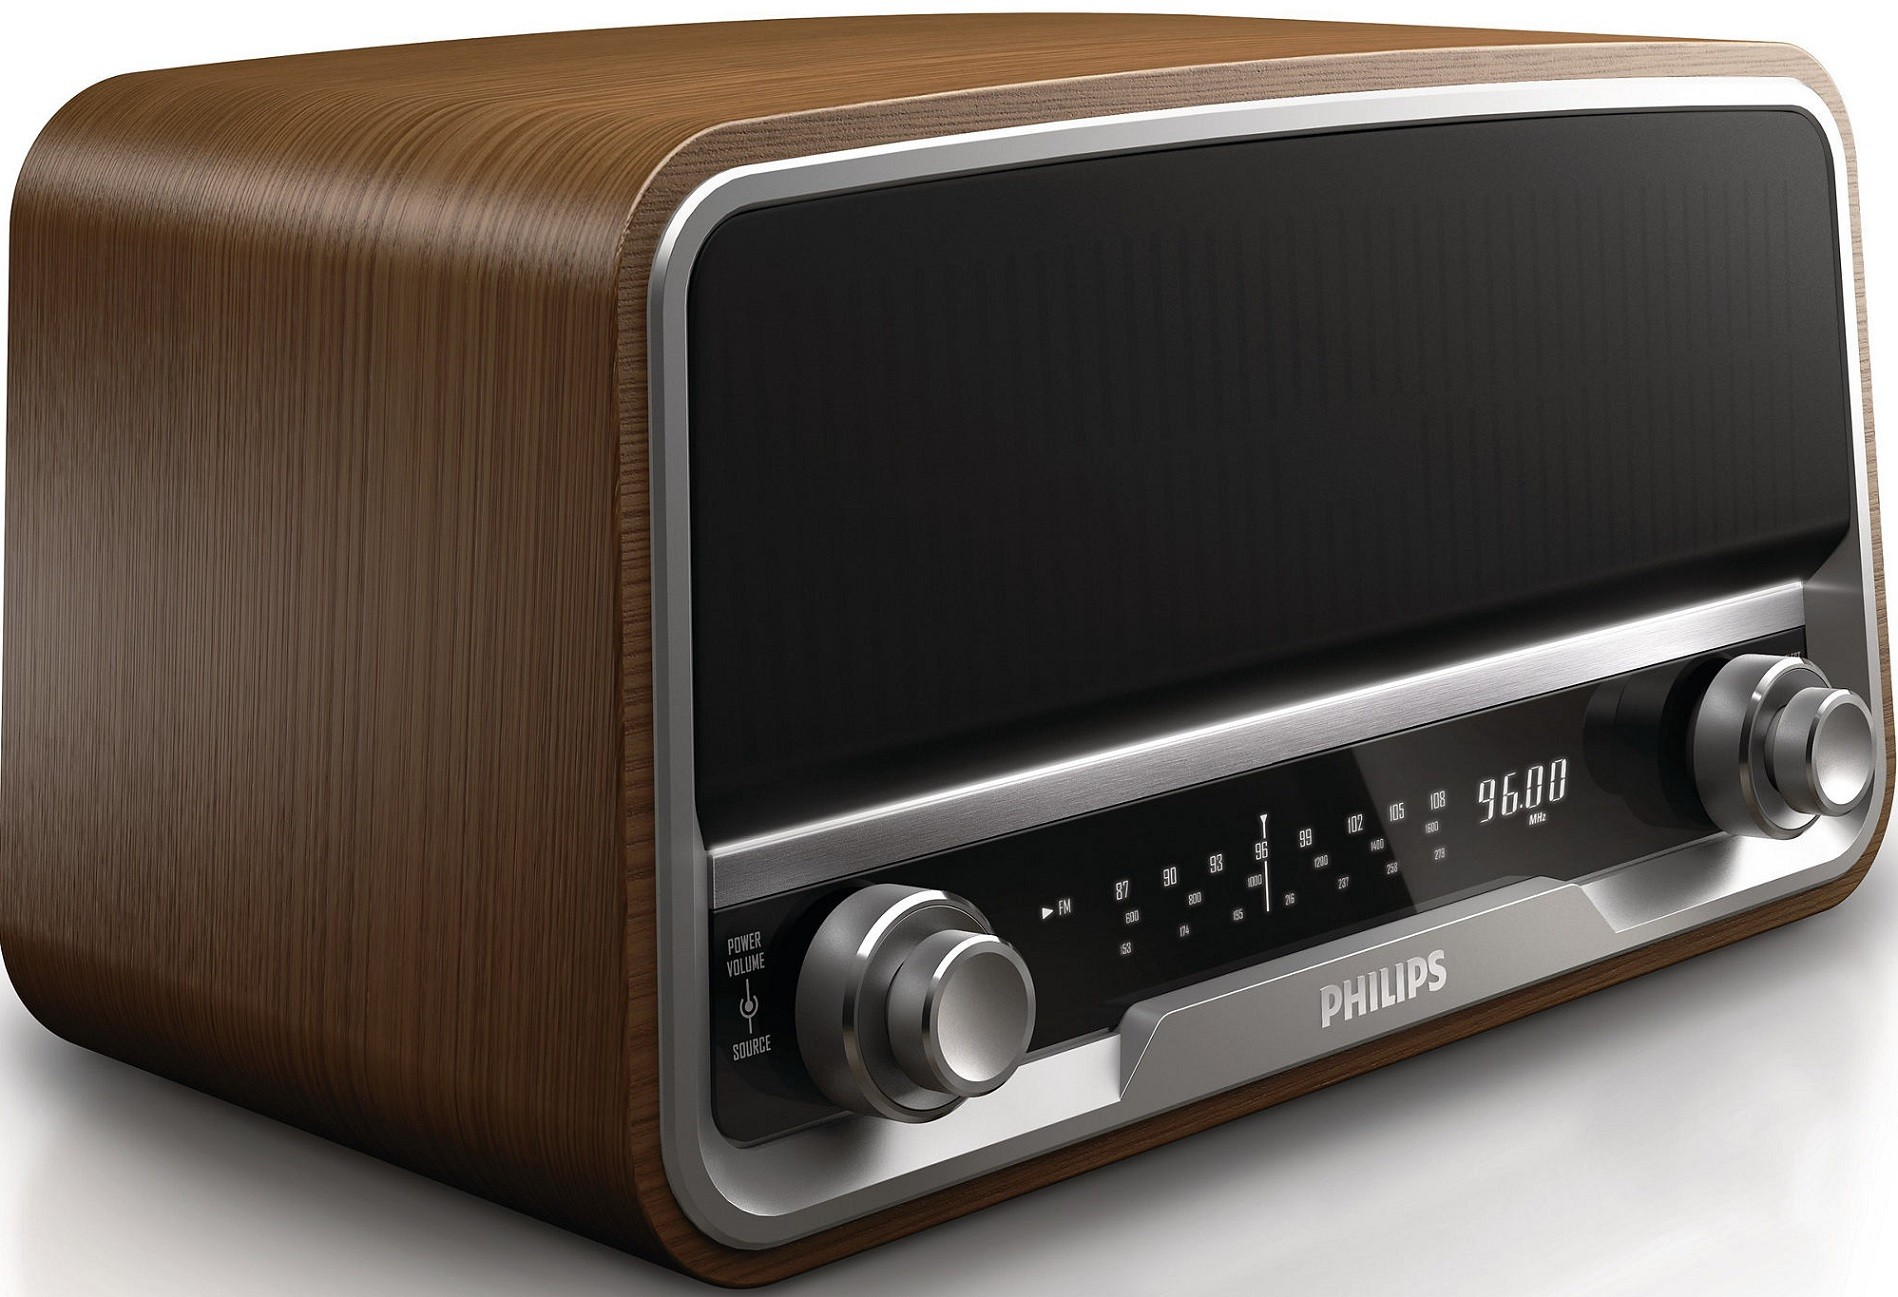 PHILIPS - OR 7000/12